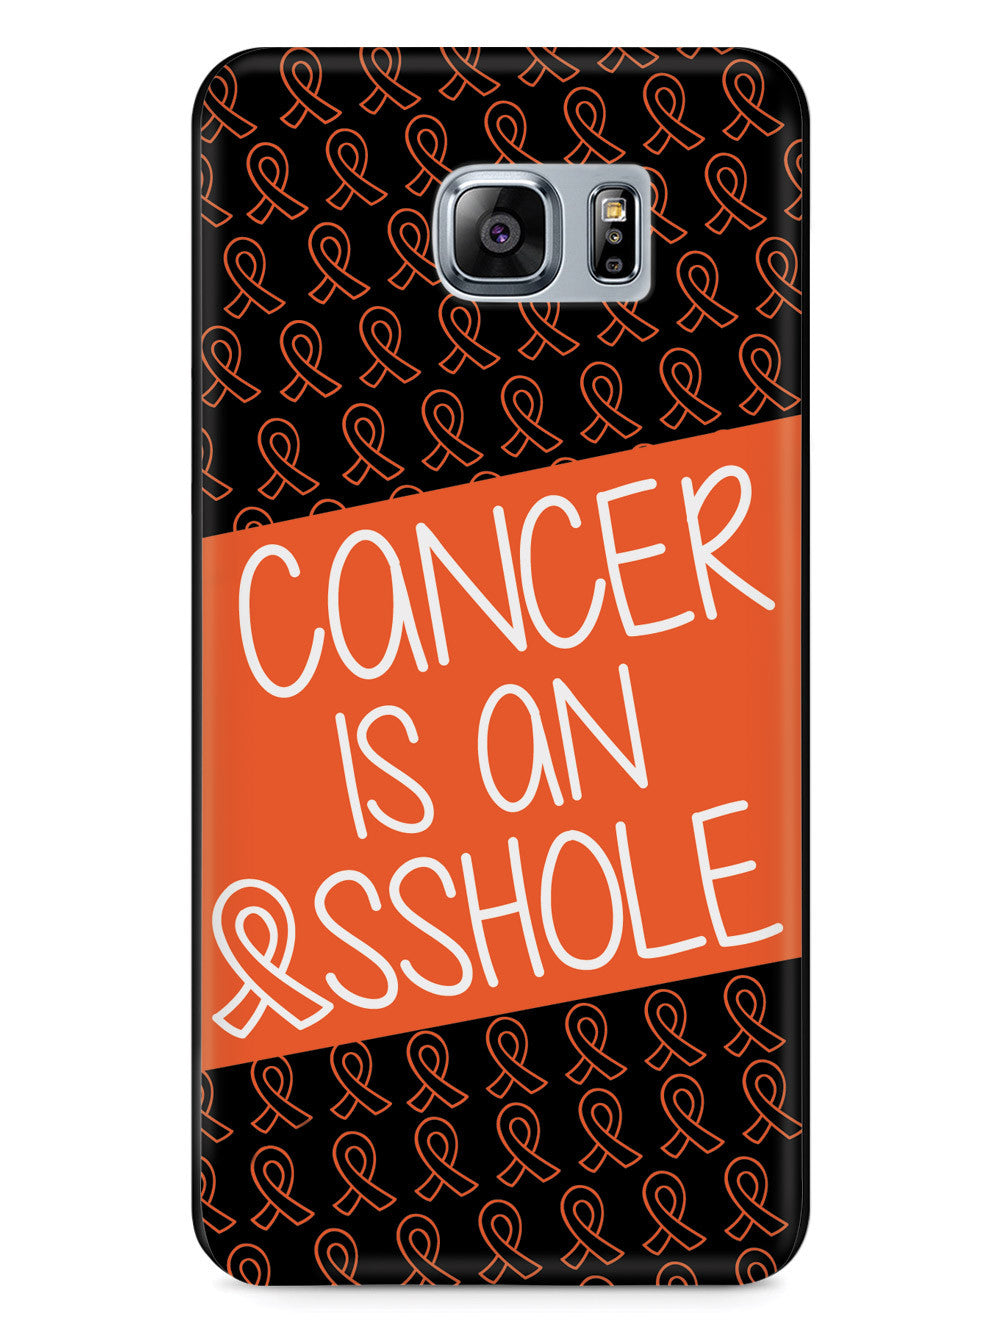 Cancer is an ASSHOLE Orange Case